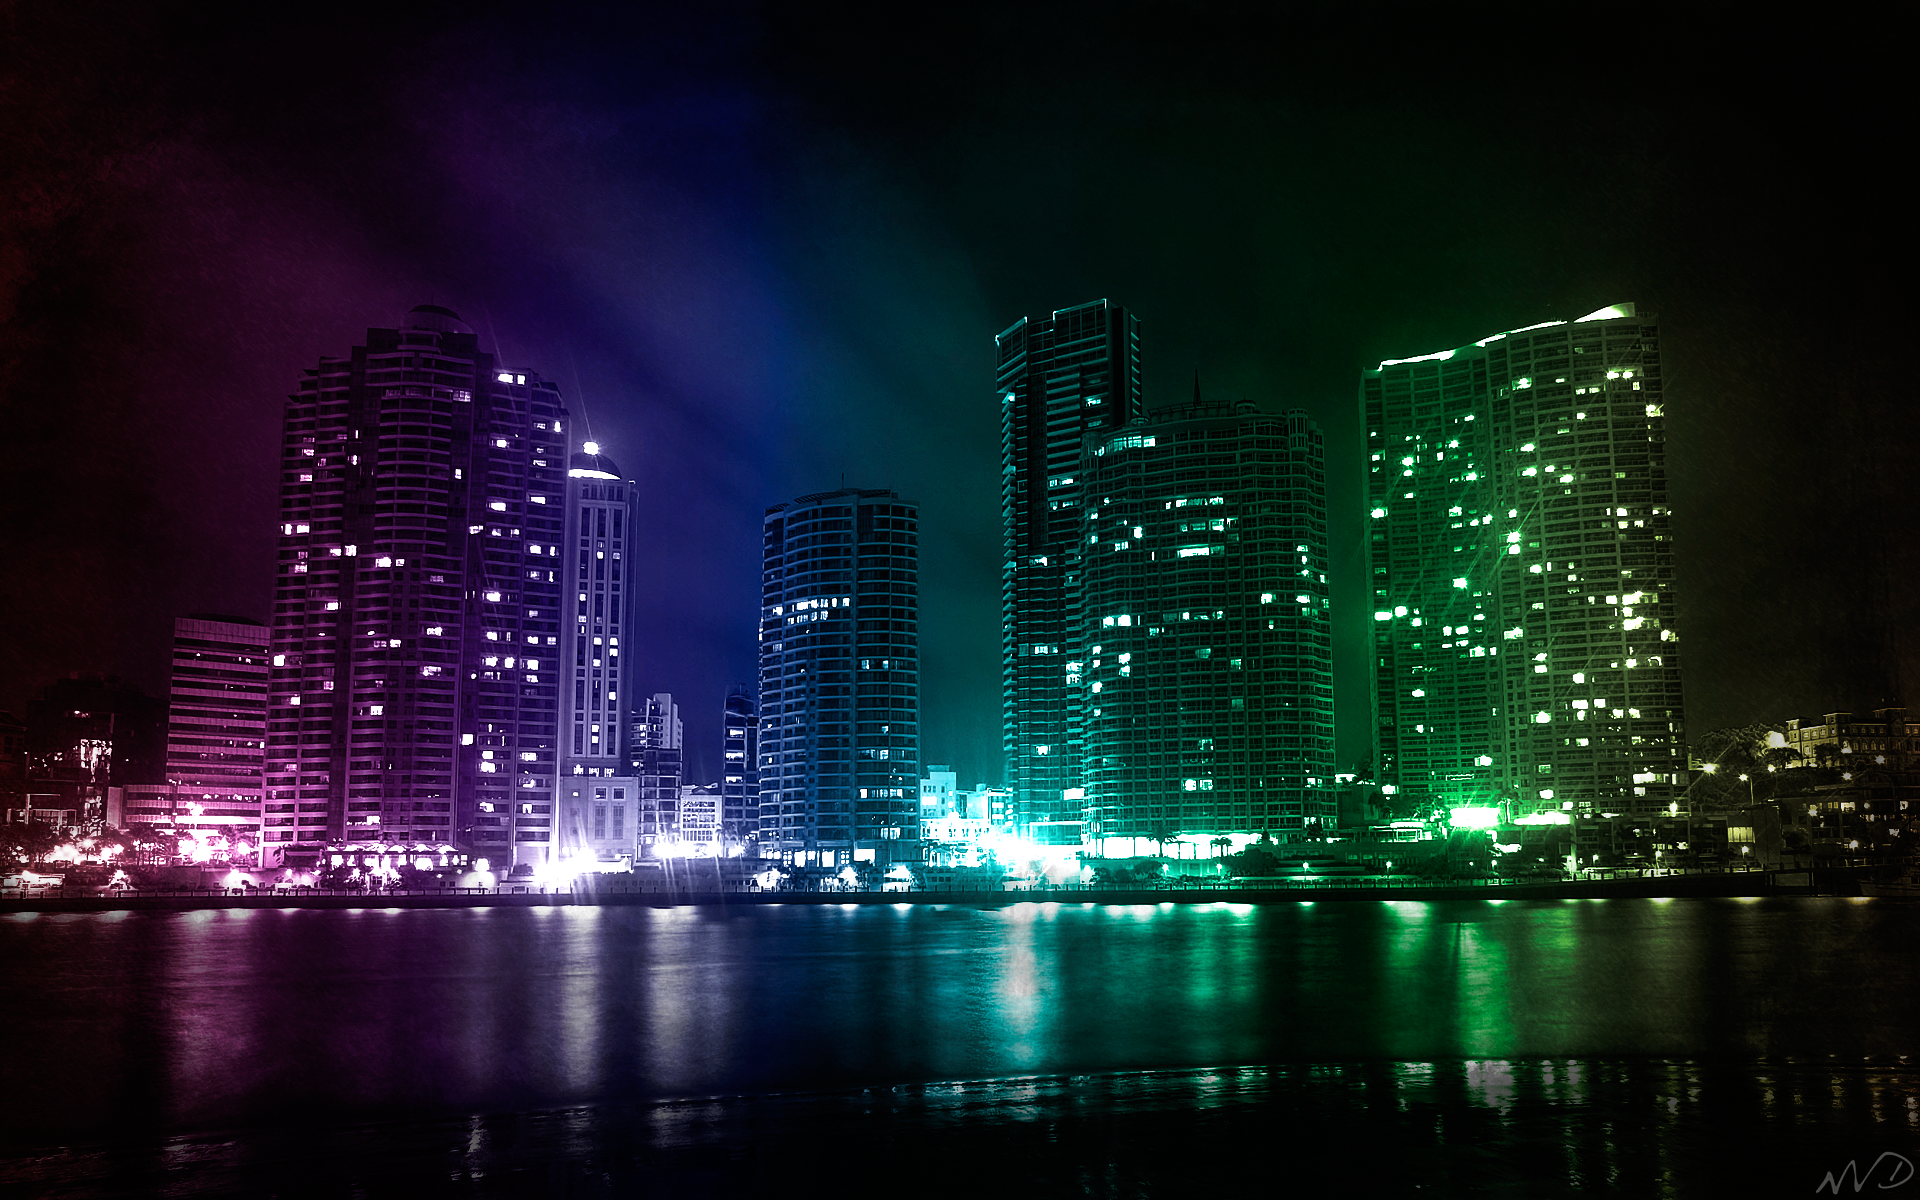 Free Hd Wallpapers city wallpaper